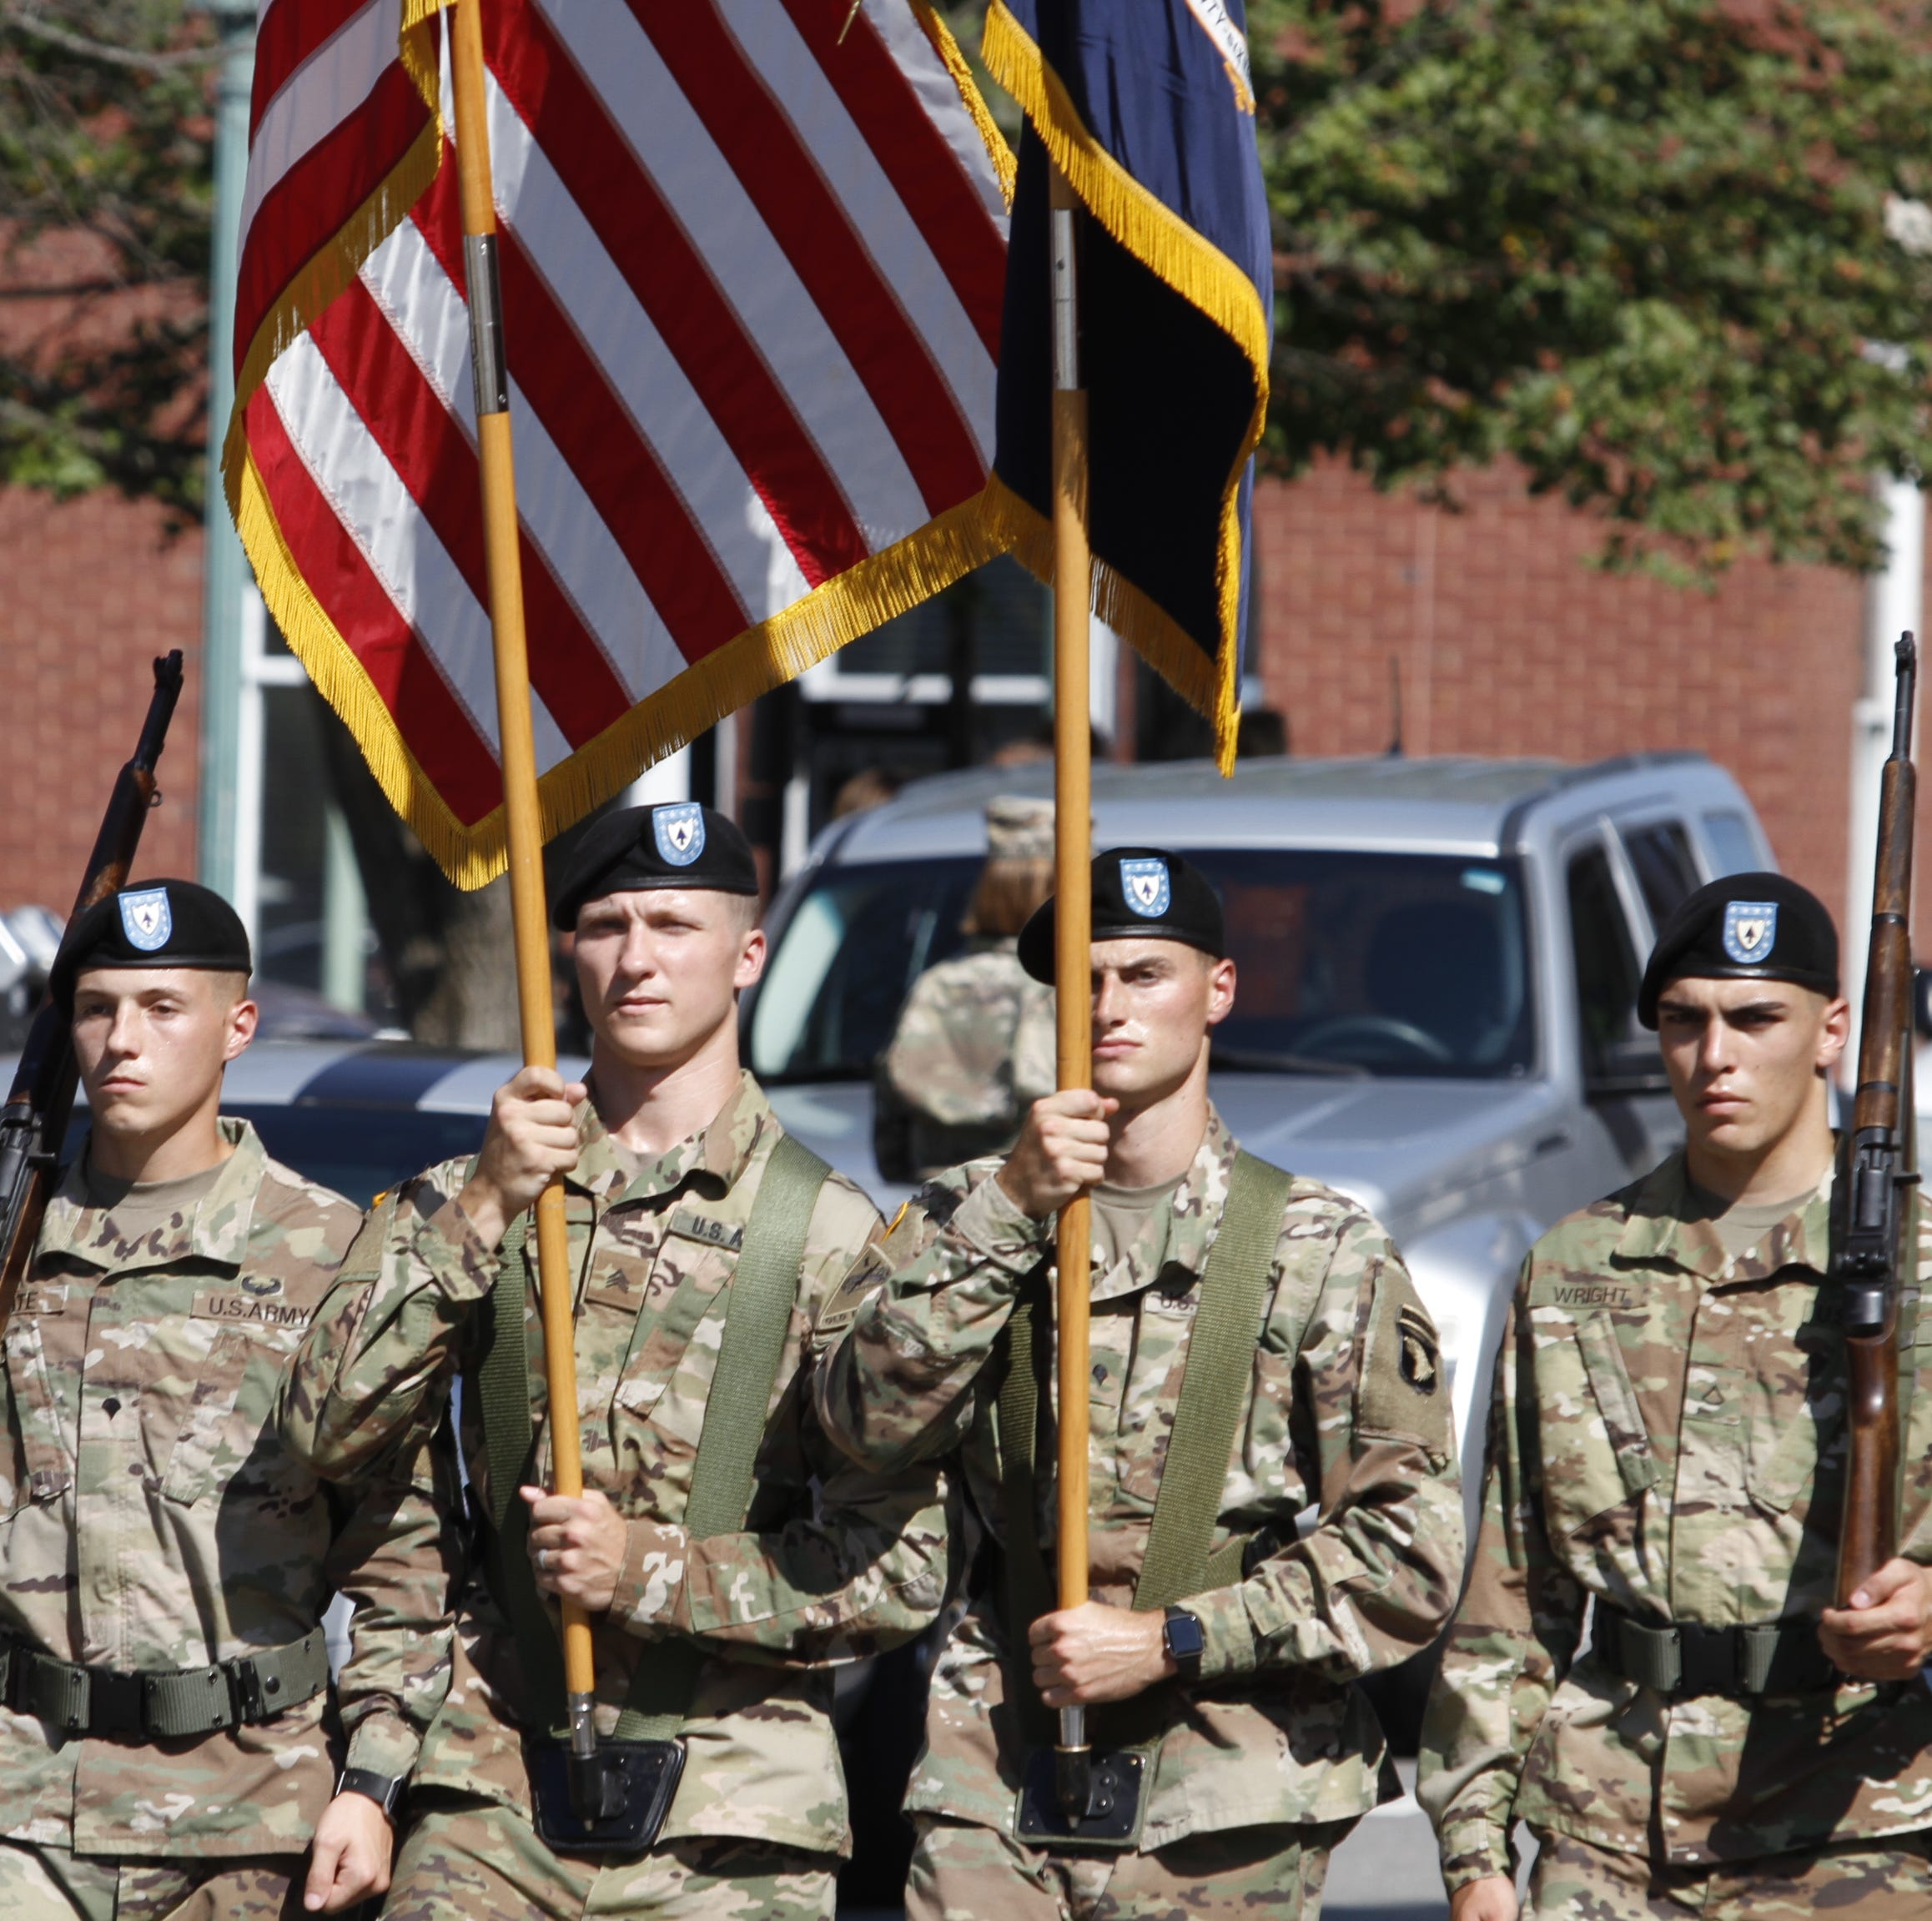 Veterans honored in Welcome Home parade through downtown